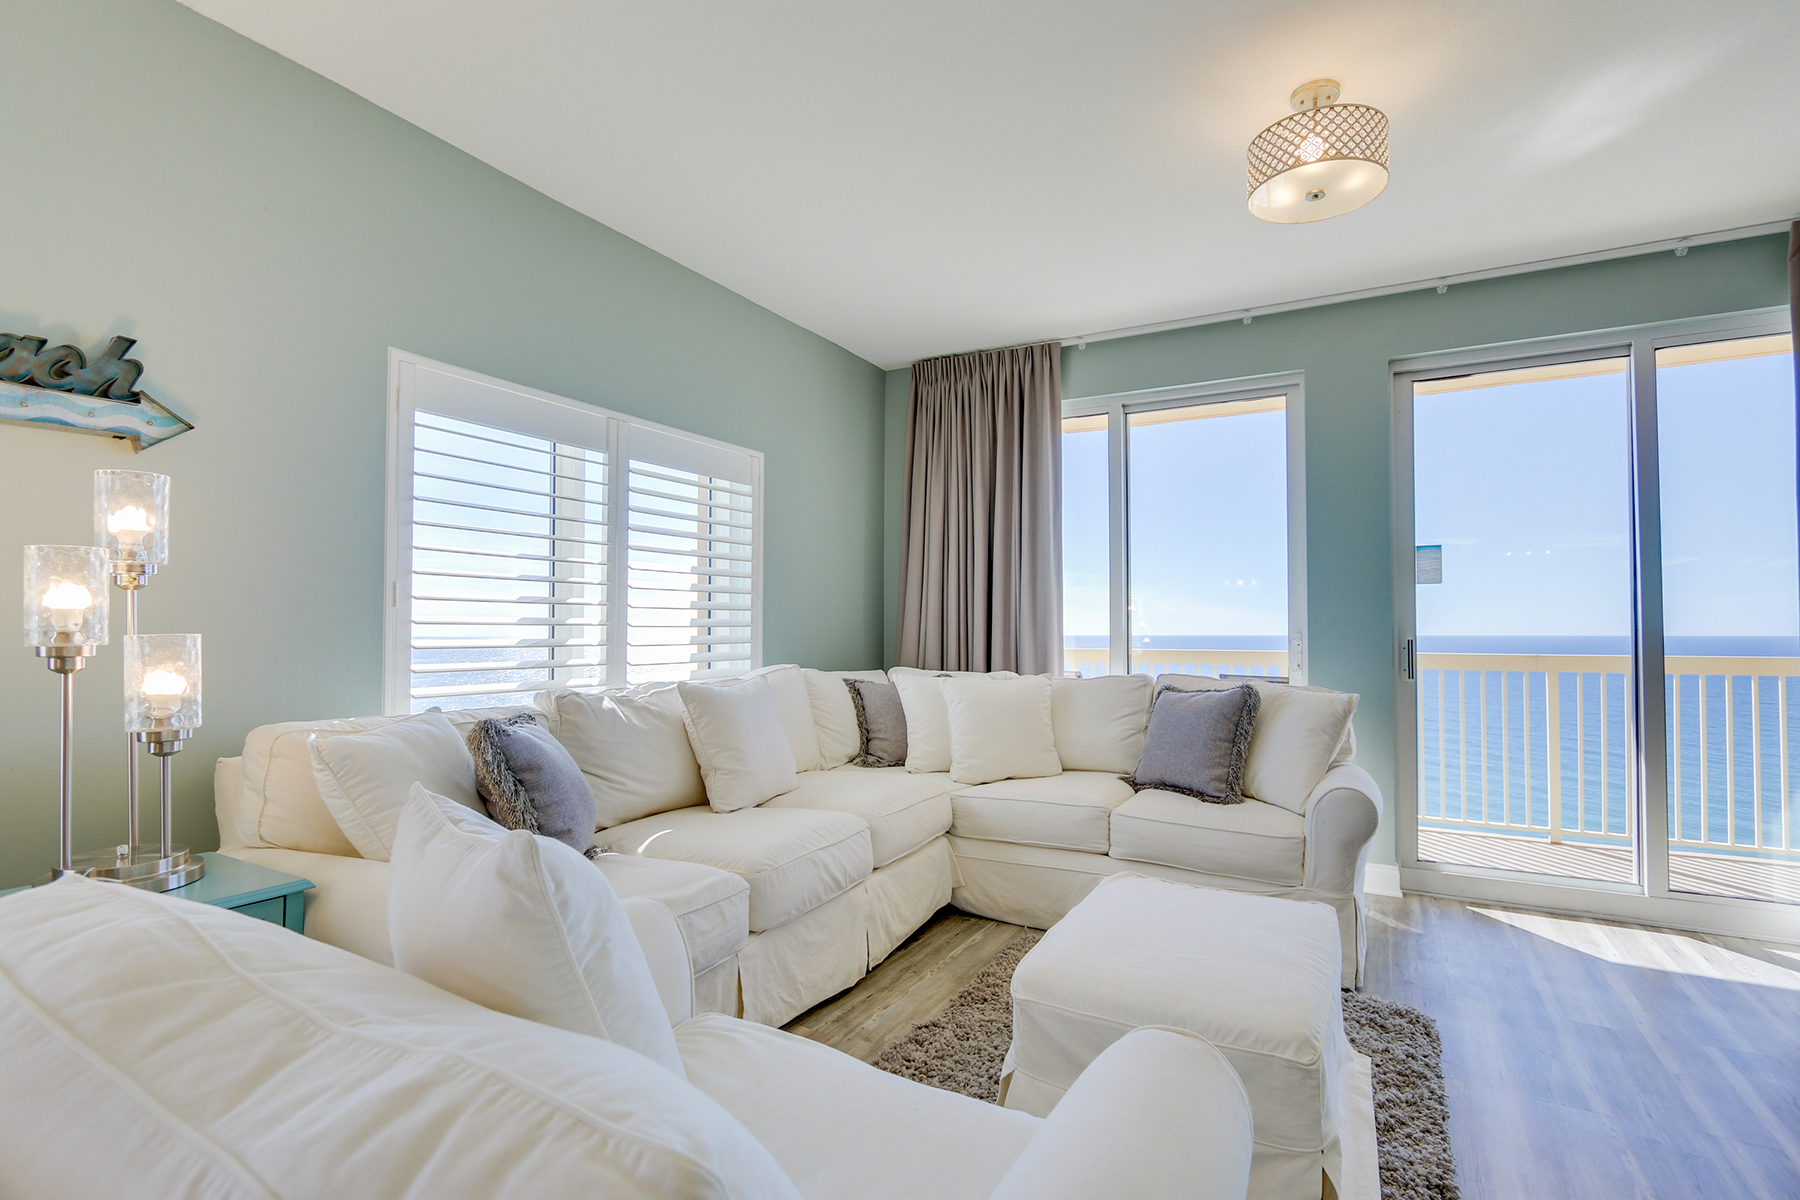 Kat Mülkiyeti için Satış at Investor's Dream Condo in Highly Desirable Calypso Towers 15817 Front Beach Road Unit 1-2201 Panama City Beach, Florida 32413 Amerika Birleşik Devletleri